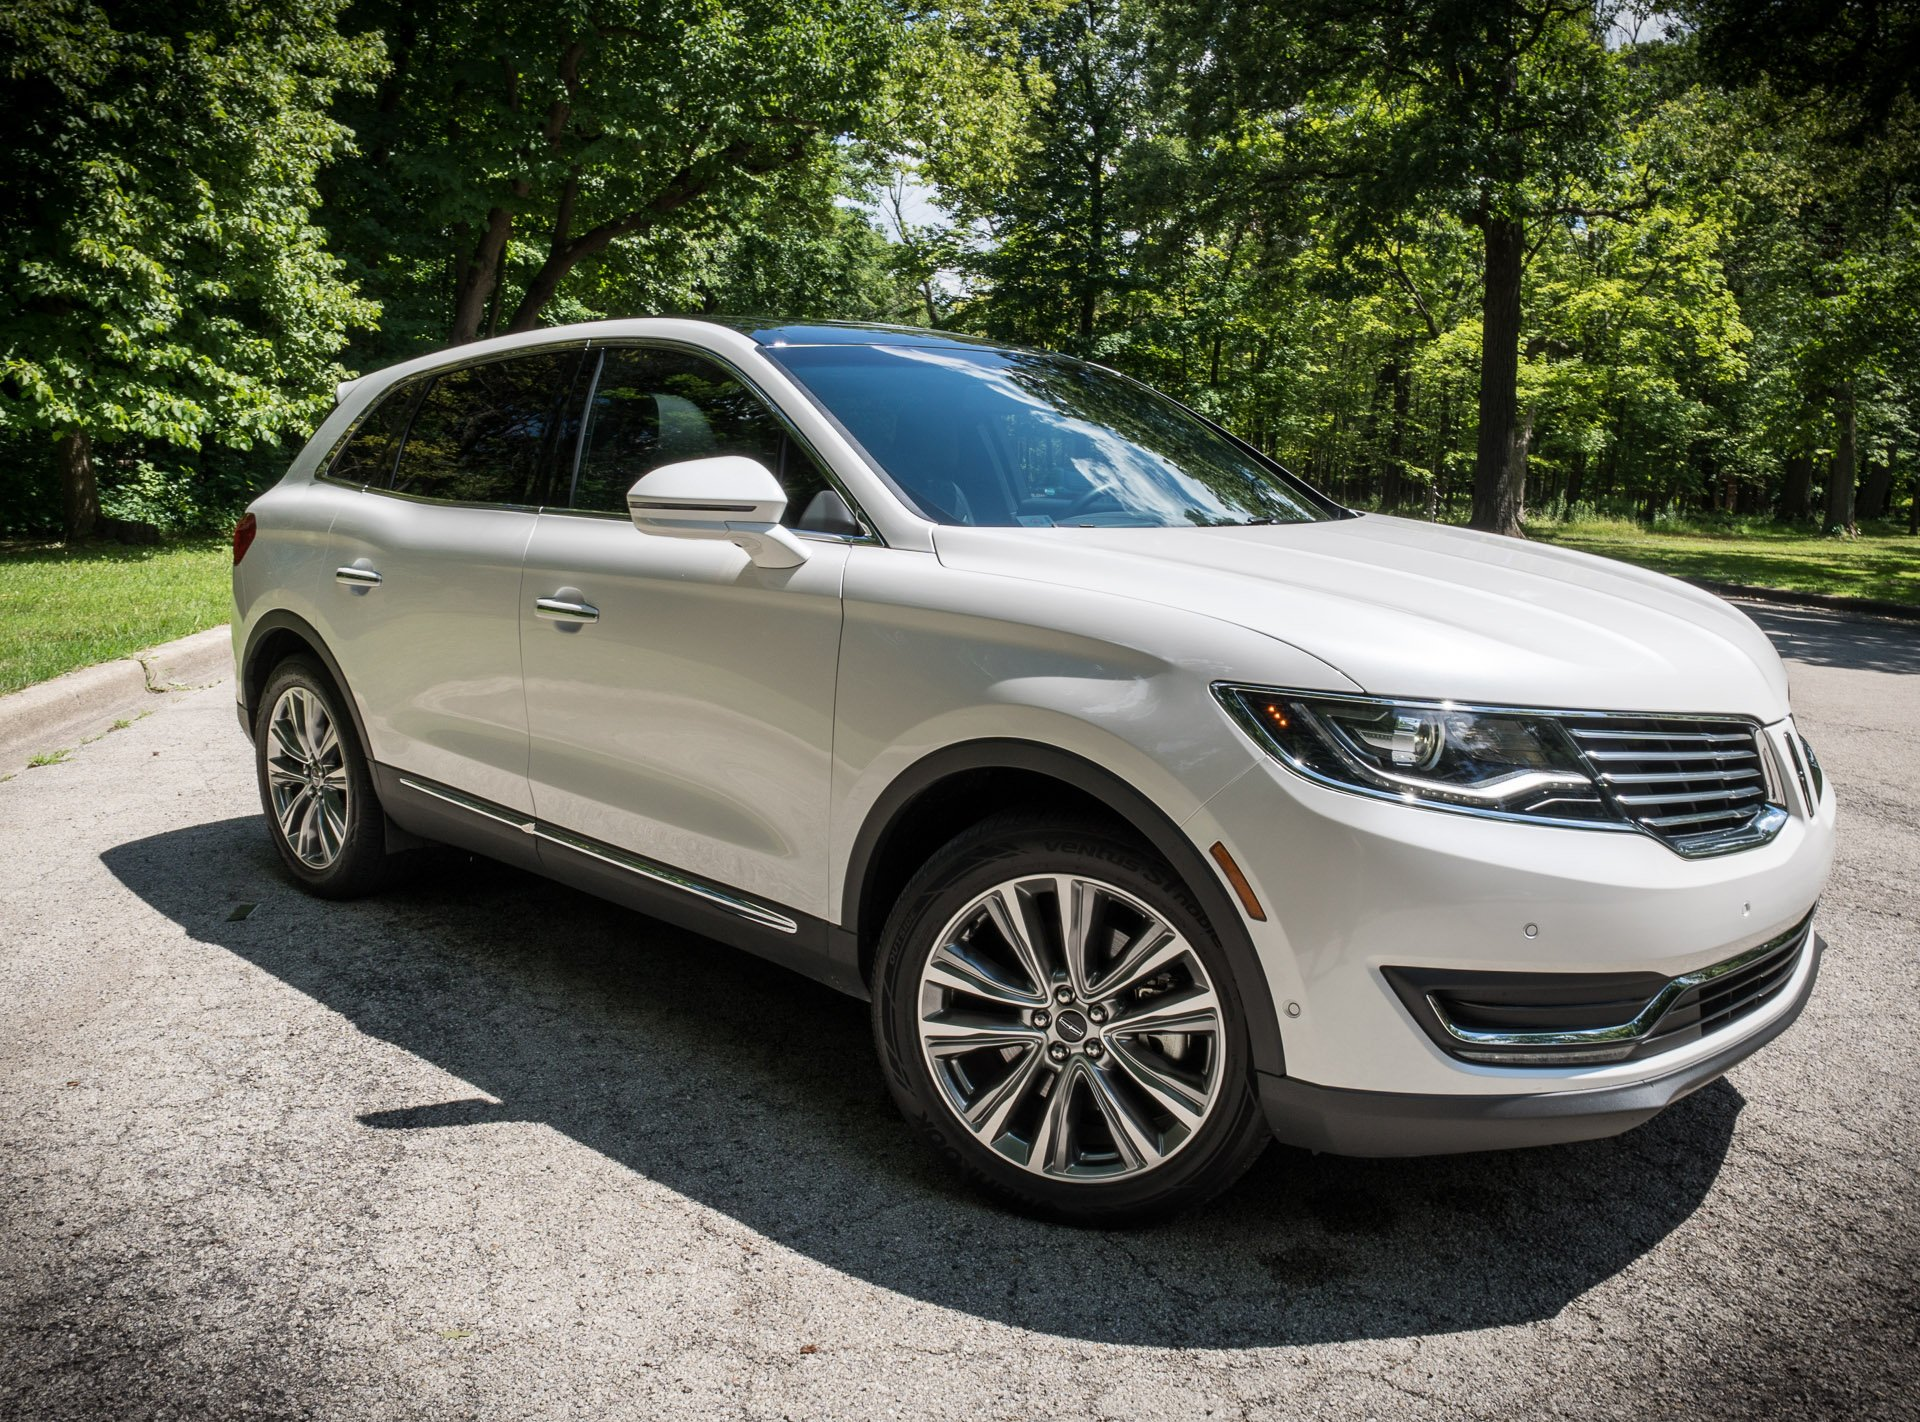 review 2016 lincoln mkx 2 7 awd 95 octane. Black Bedroom Furniture Sets. Home Design Ideas